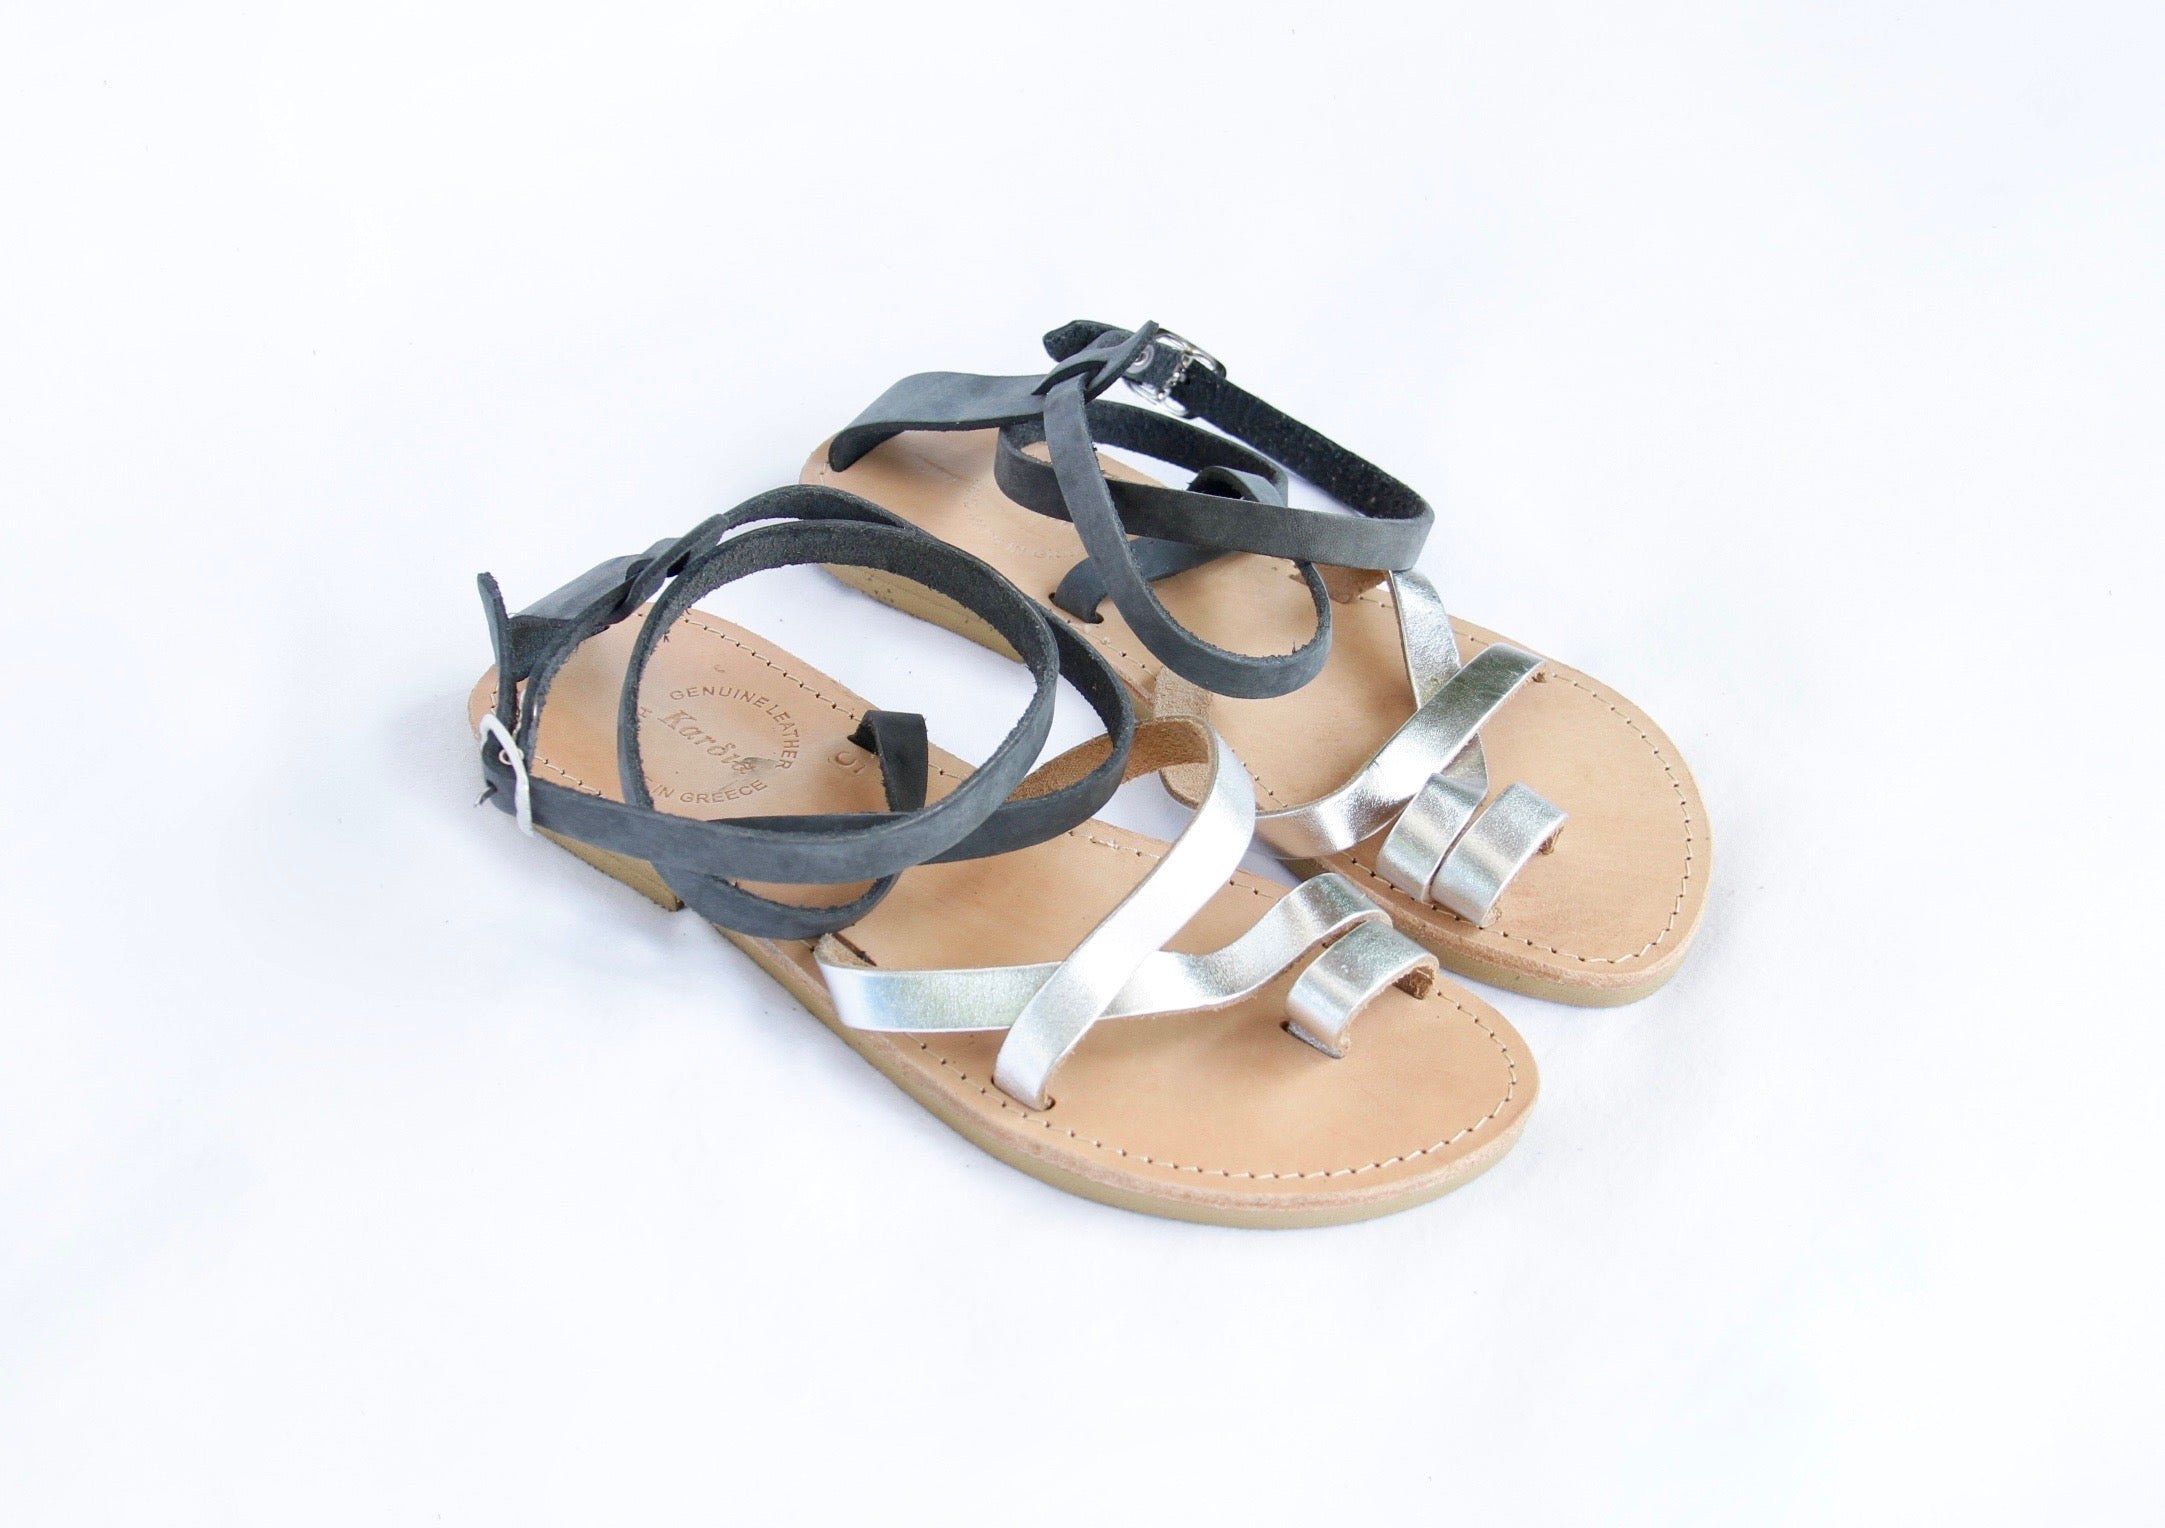 Kassia Sandals with Distressed Grey & Silver Leather Straps - Kardia